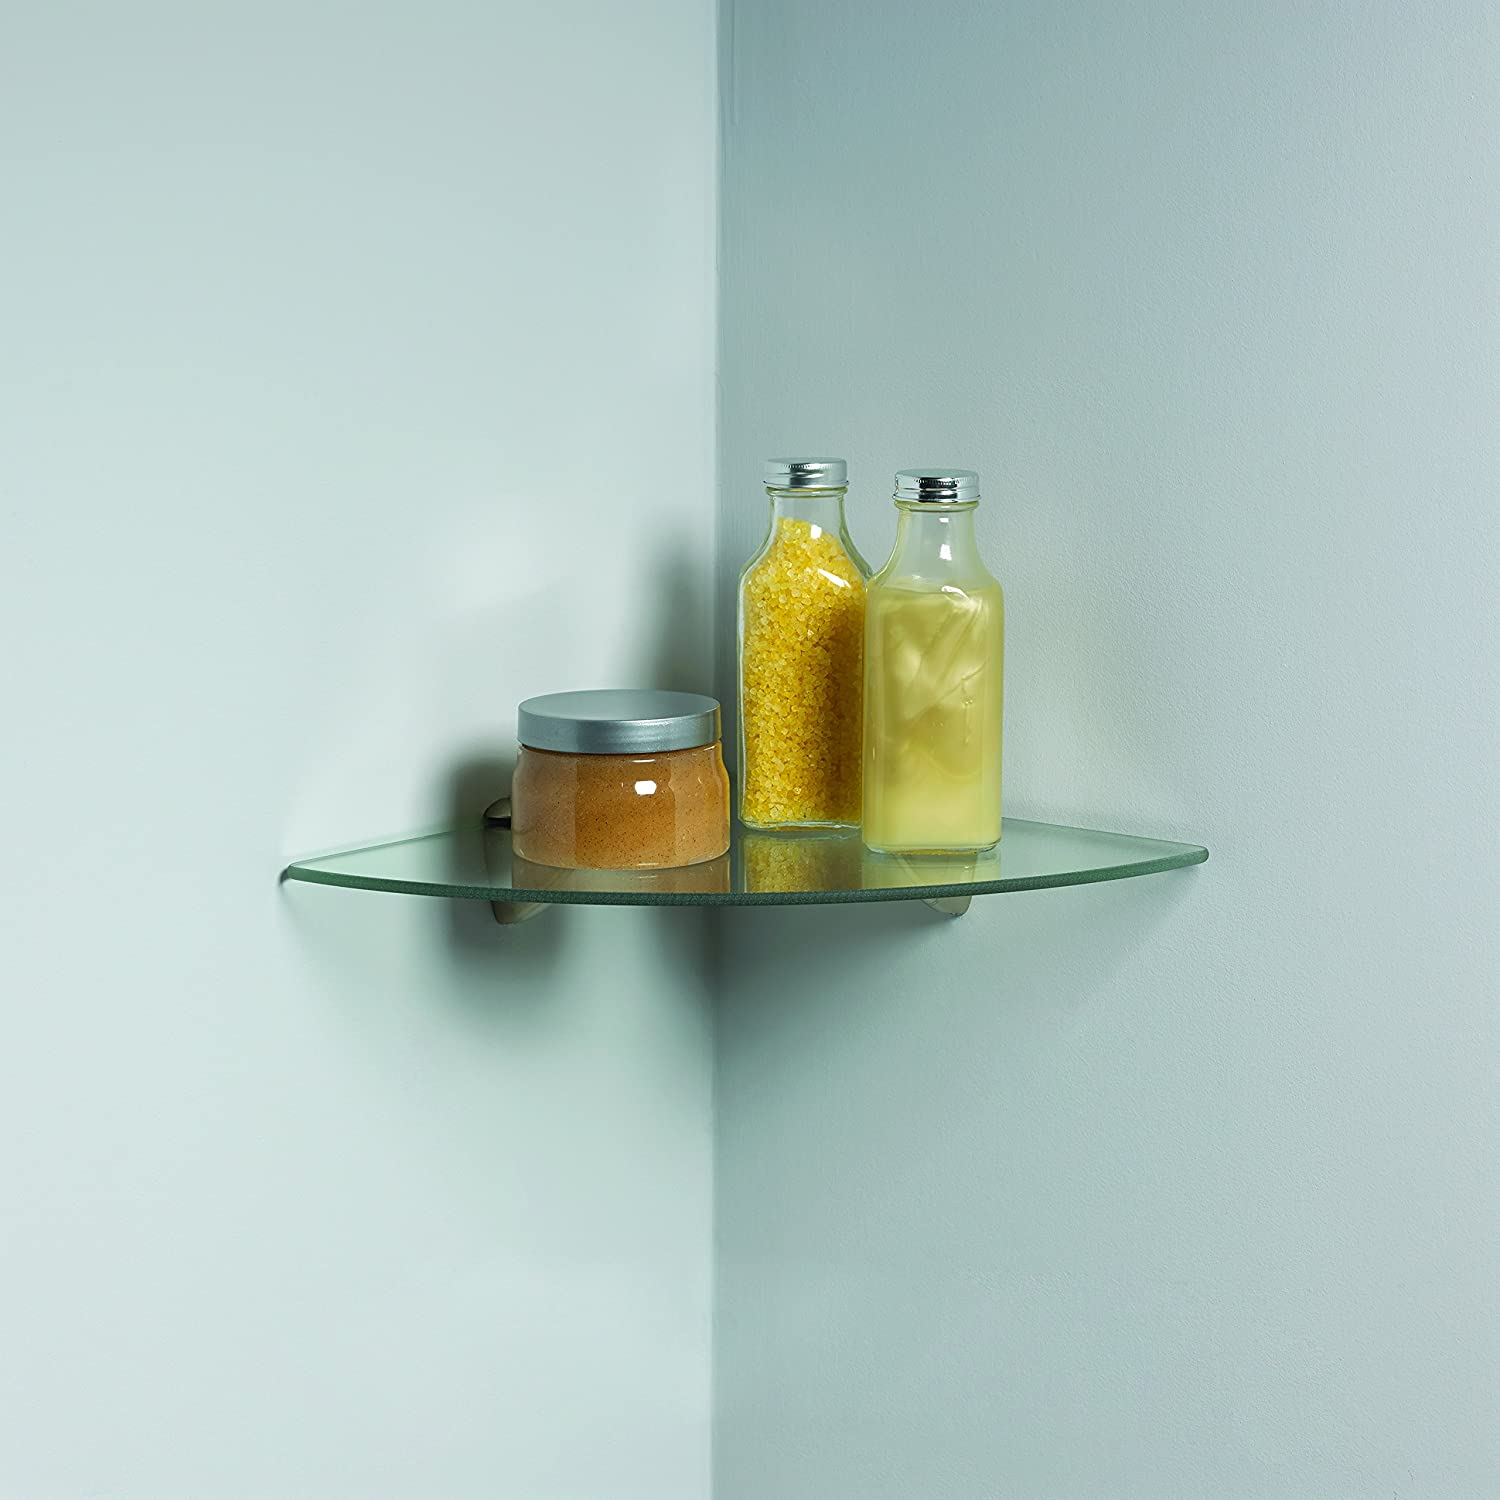 Amazon.com: John Sterling Shelf-Made KT-0134-1212SN Glass Corner ...